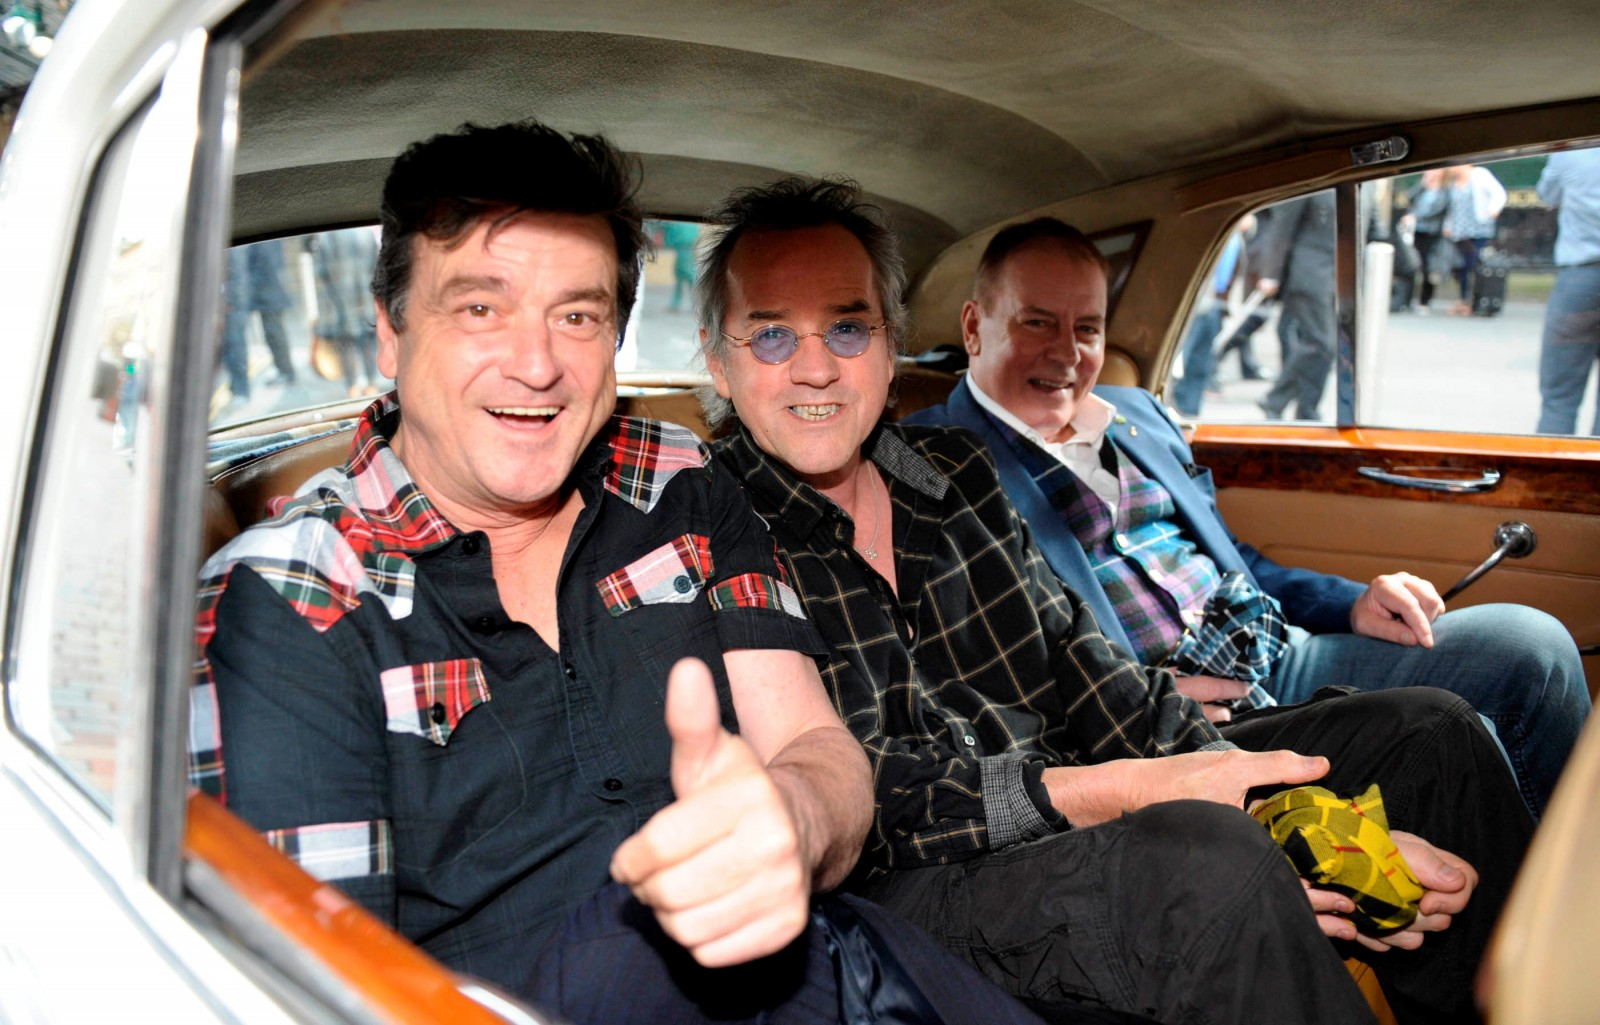 If you were ever a fan of the Bay City Rollers then you NEED to read this!